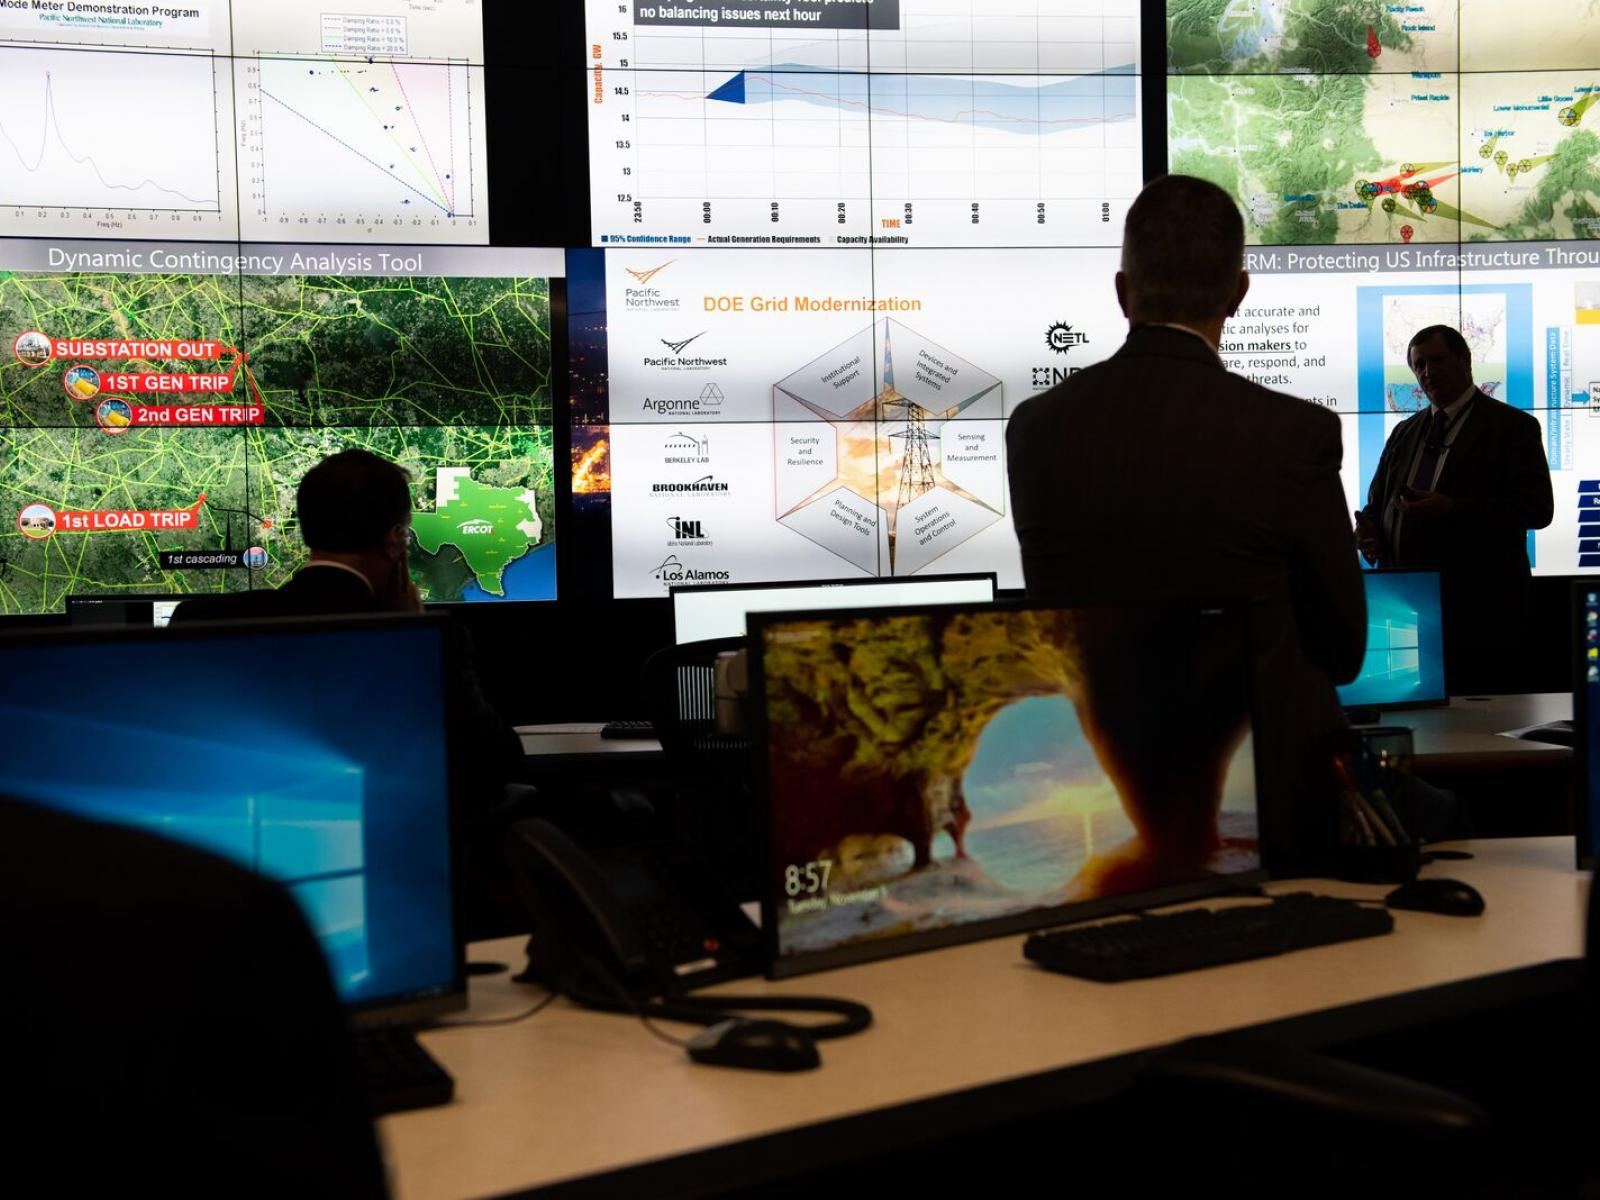 Researchers discuss the power grid in an electrical control room